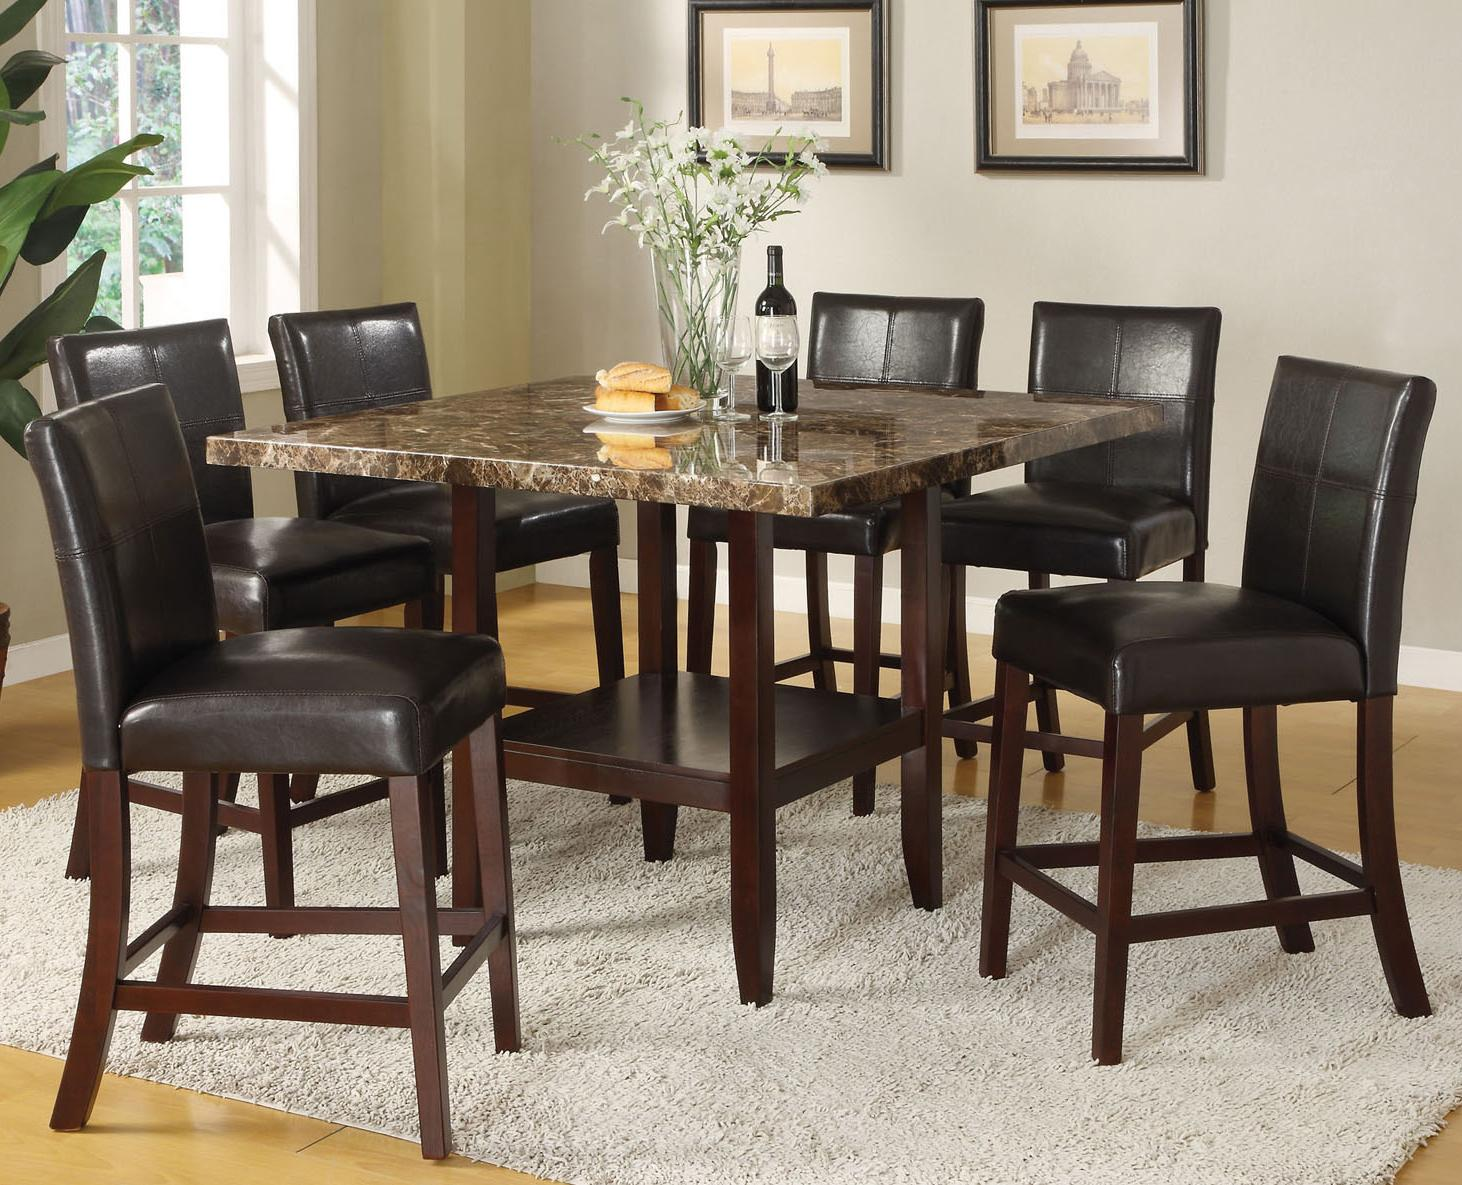 Acme furniture idris 7 piece counter height dining set for Counter height dining table set